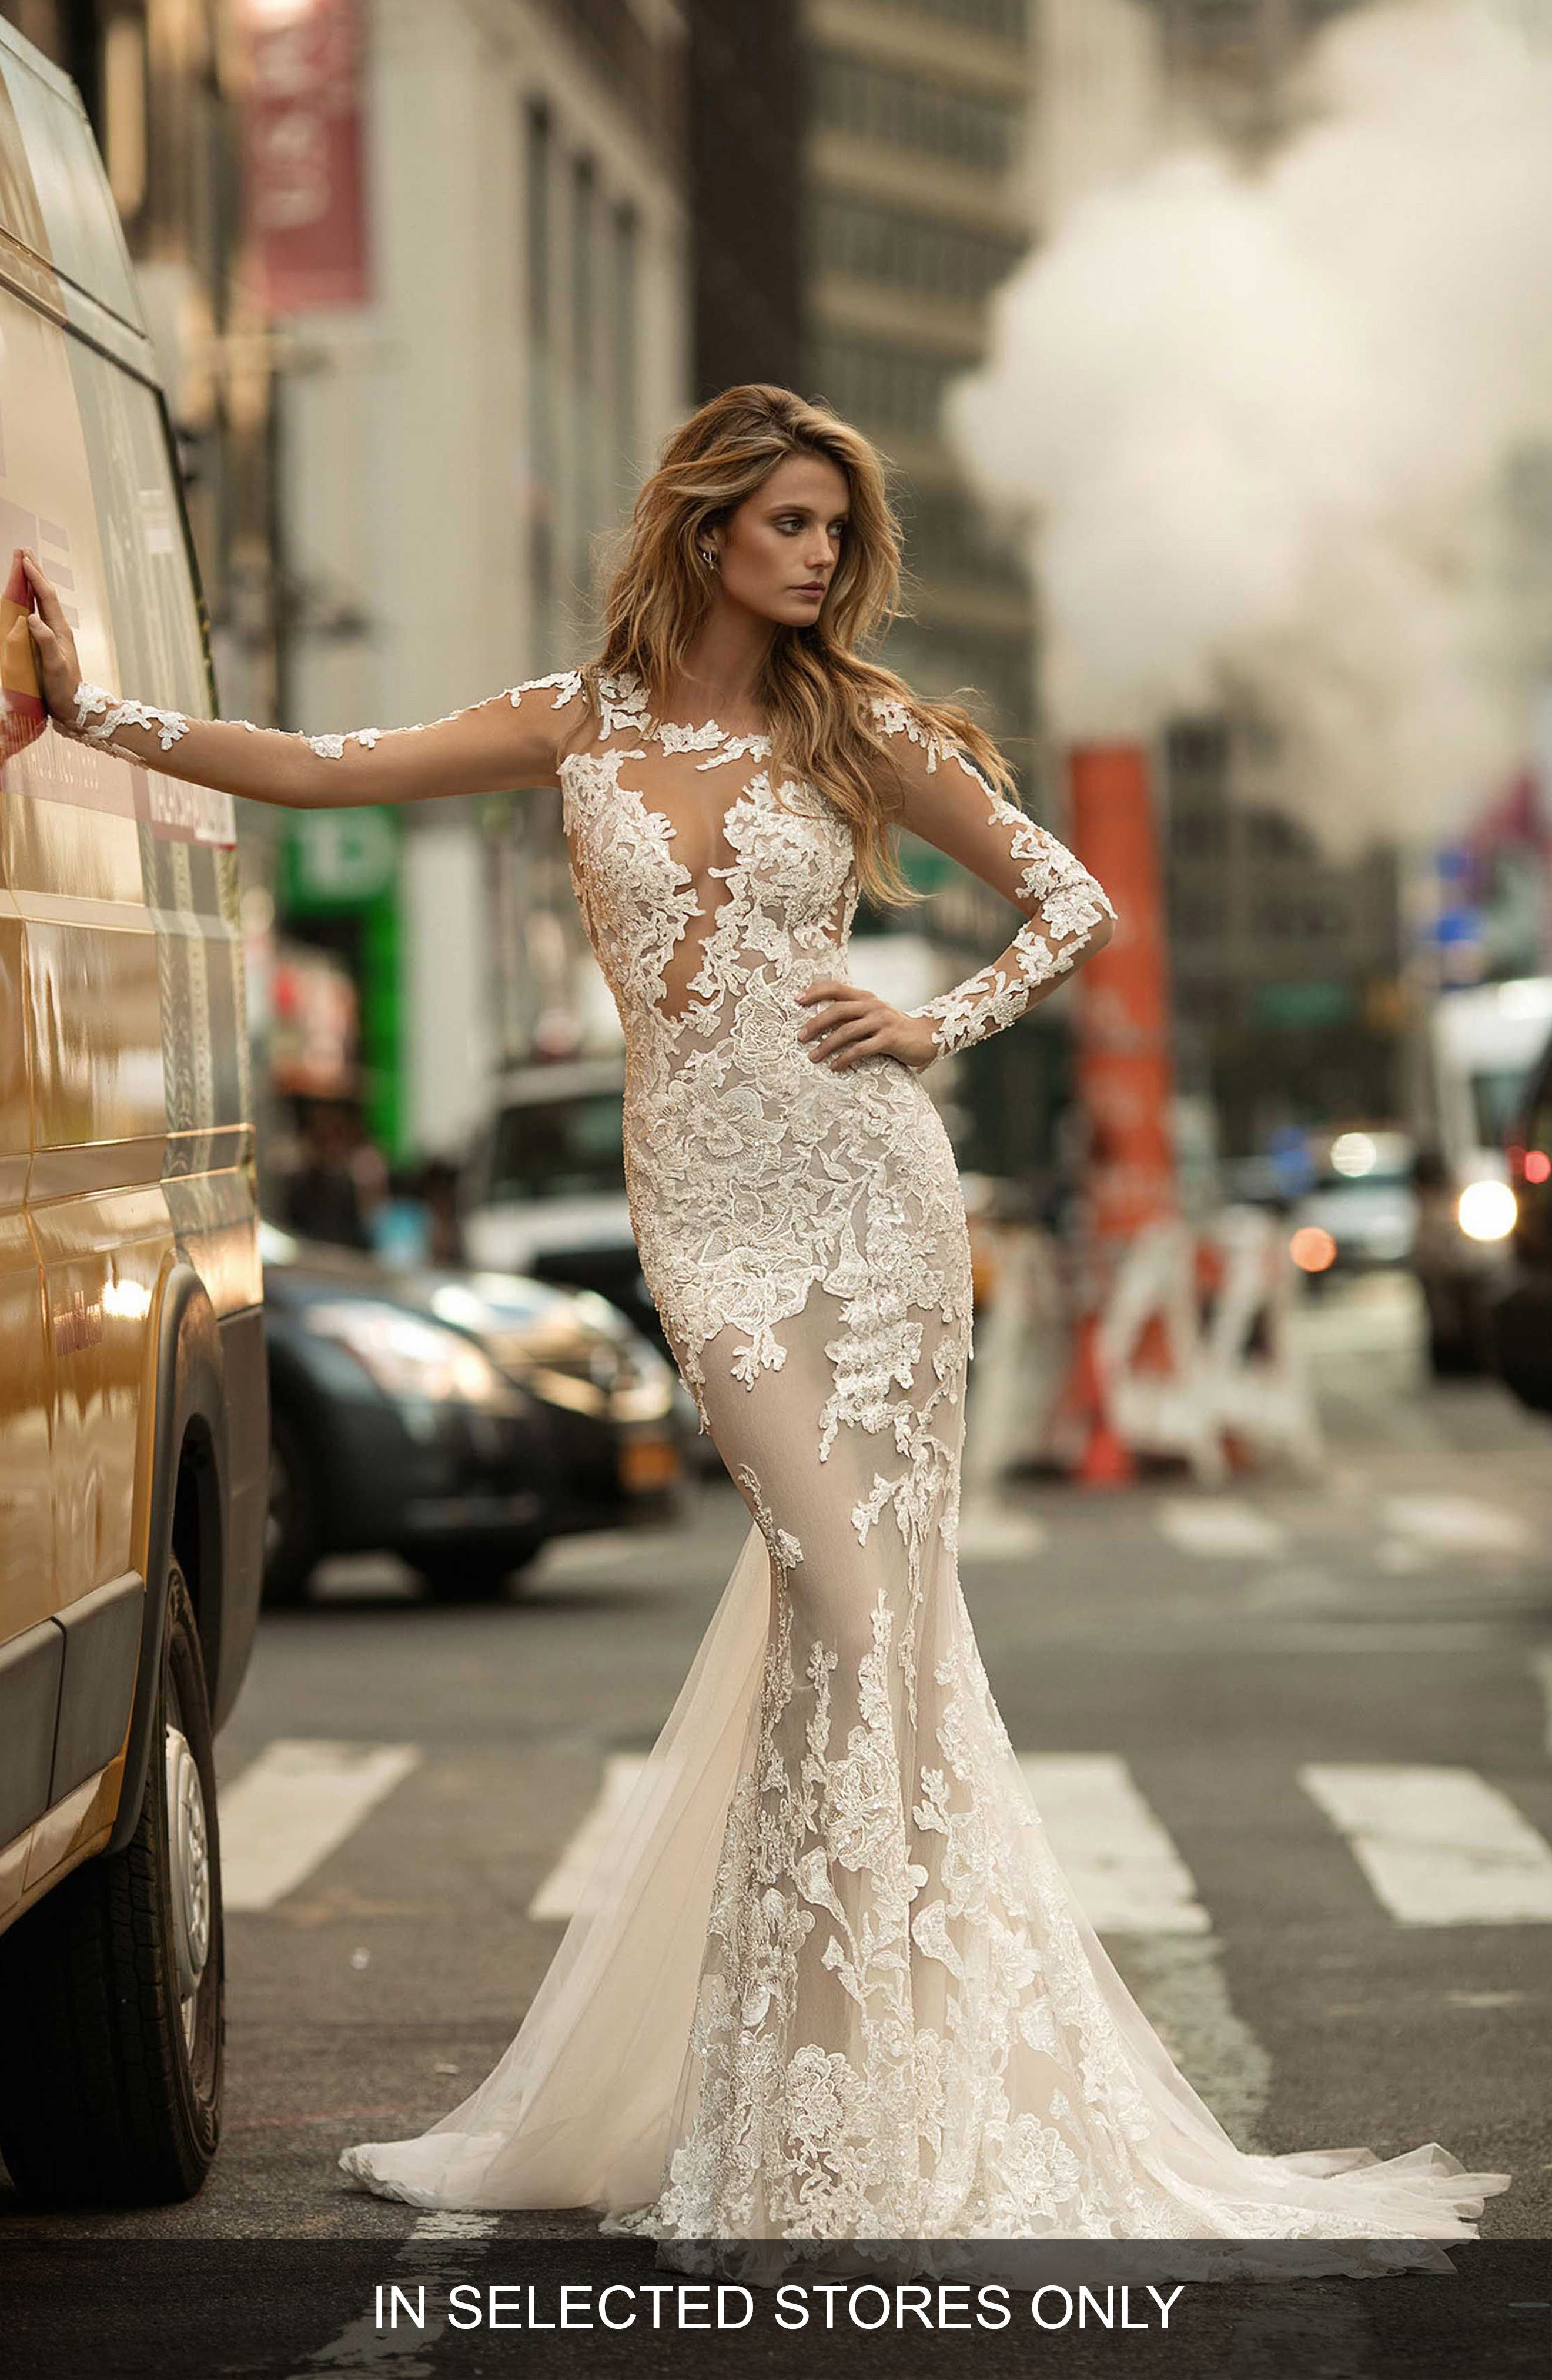 Main Image - Berta Illusion Long Sleeve Mermaid Gown (In Selected Stores Only)